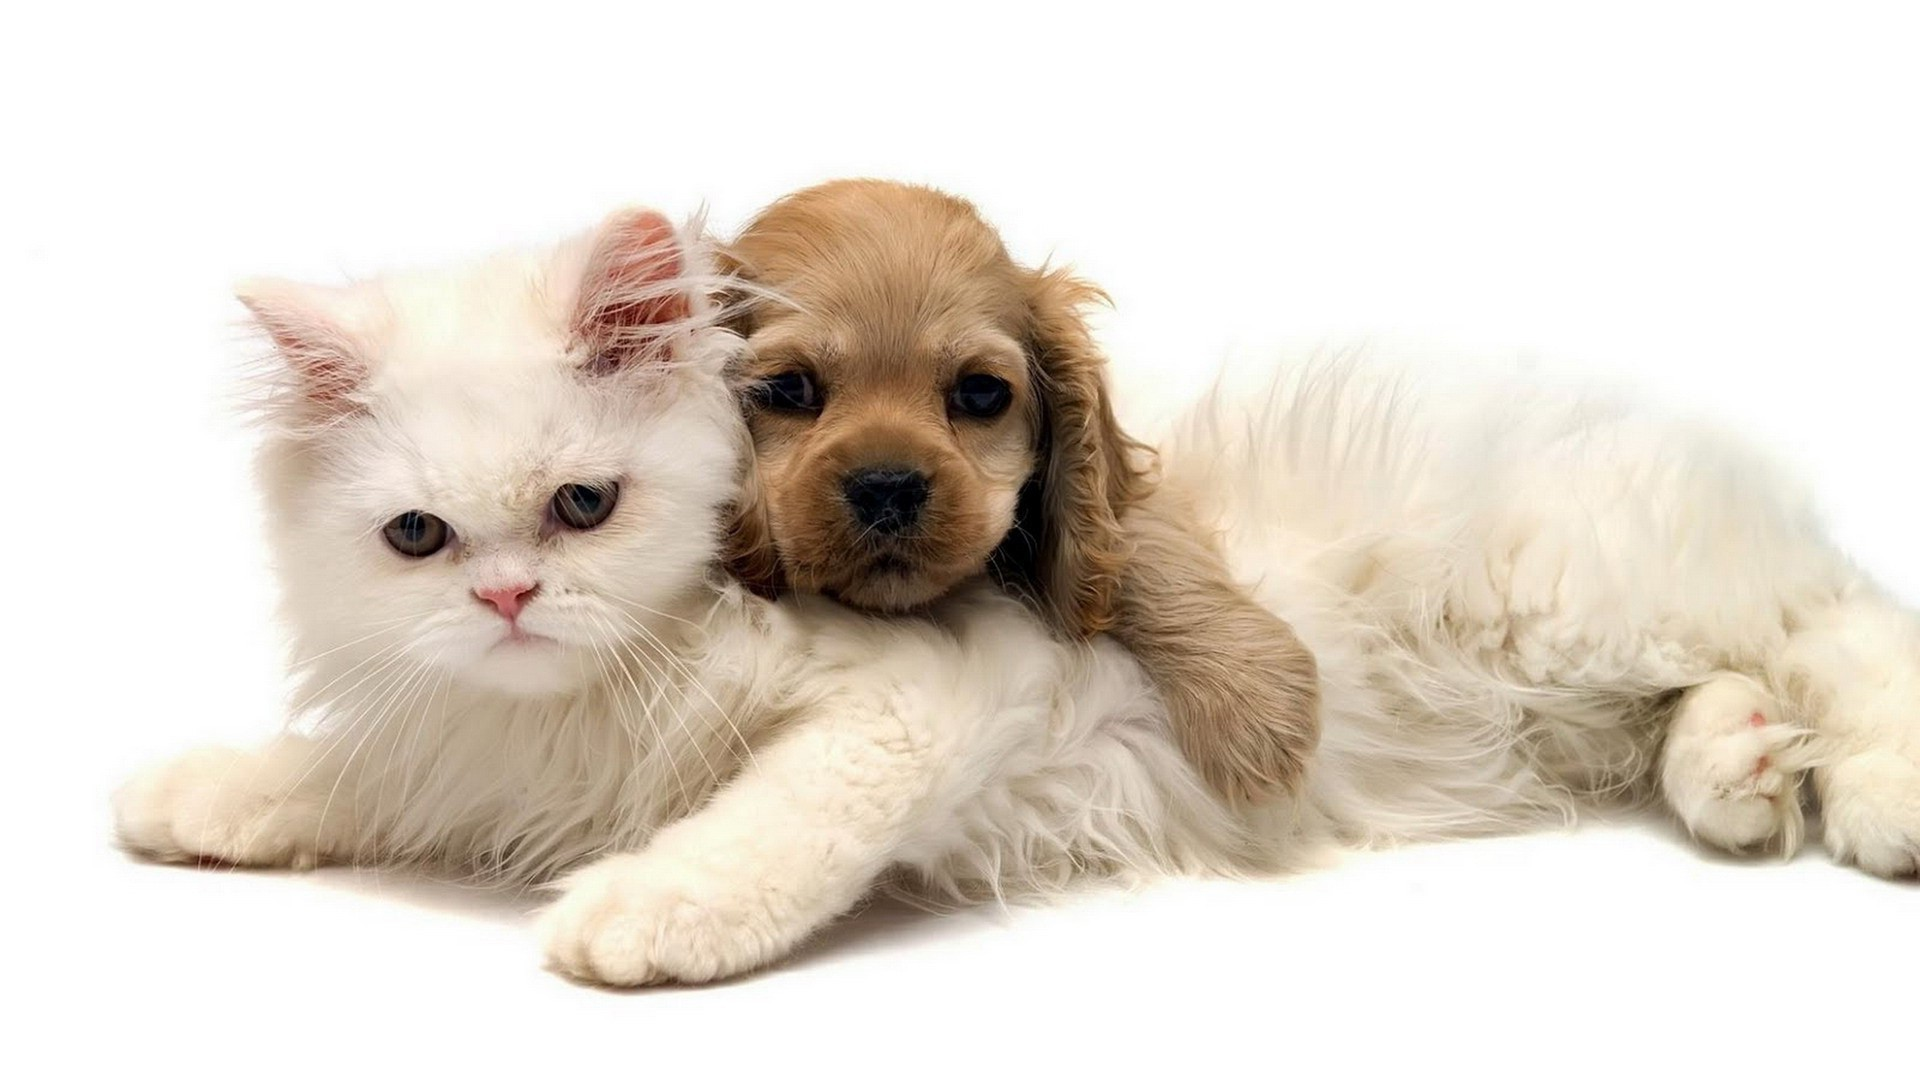 cats and kittens and dogs and puppies images gallery – PETS . …